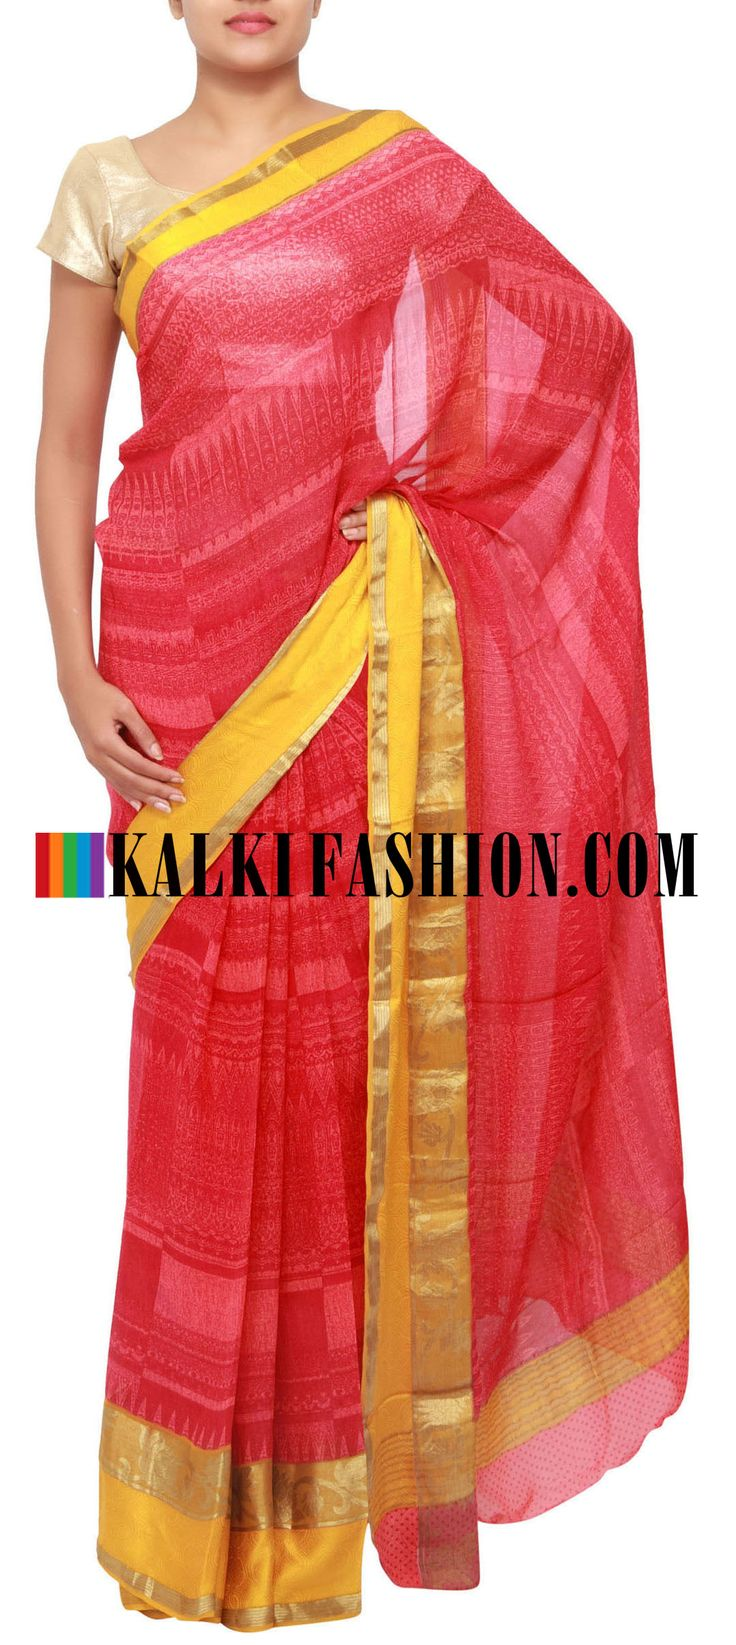 Get this beautiful saree here: http://www.kalkifashion.com/printed-saree-in-red-highlighted-in-banarasi-border-only-on-kalki.html Free shipping worldwide.